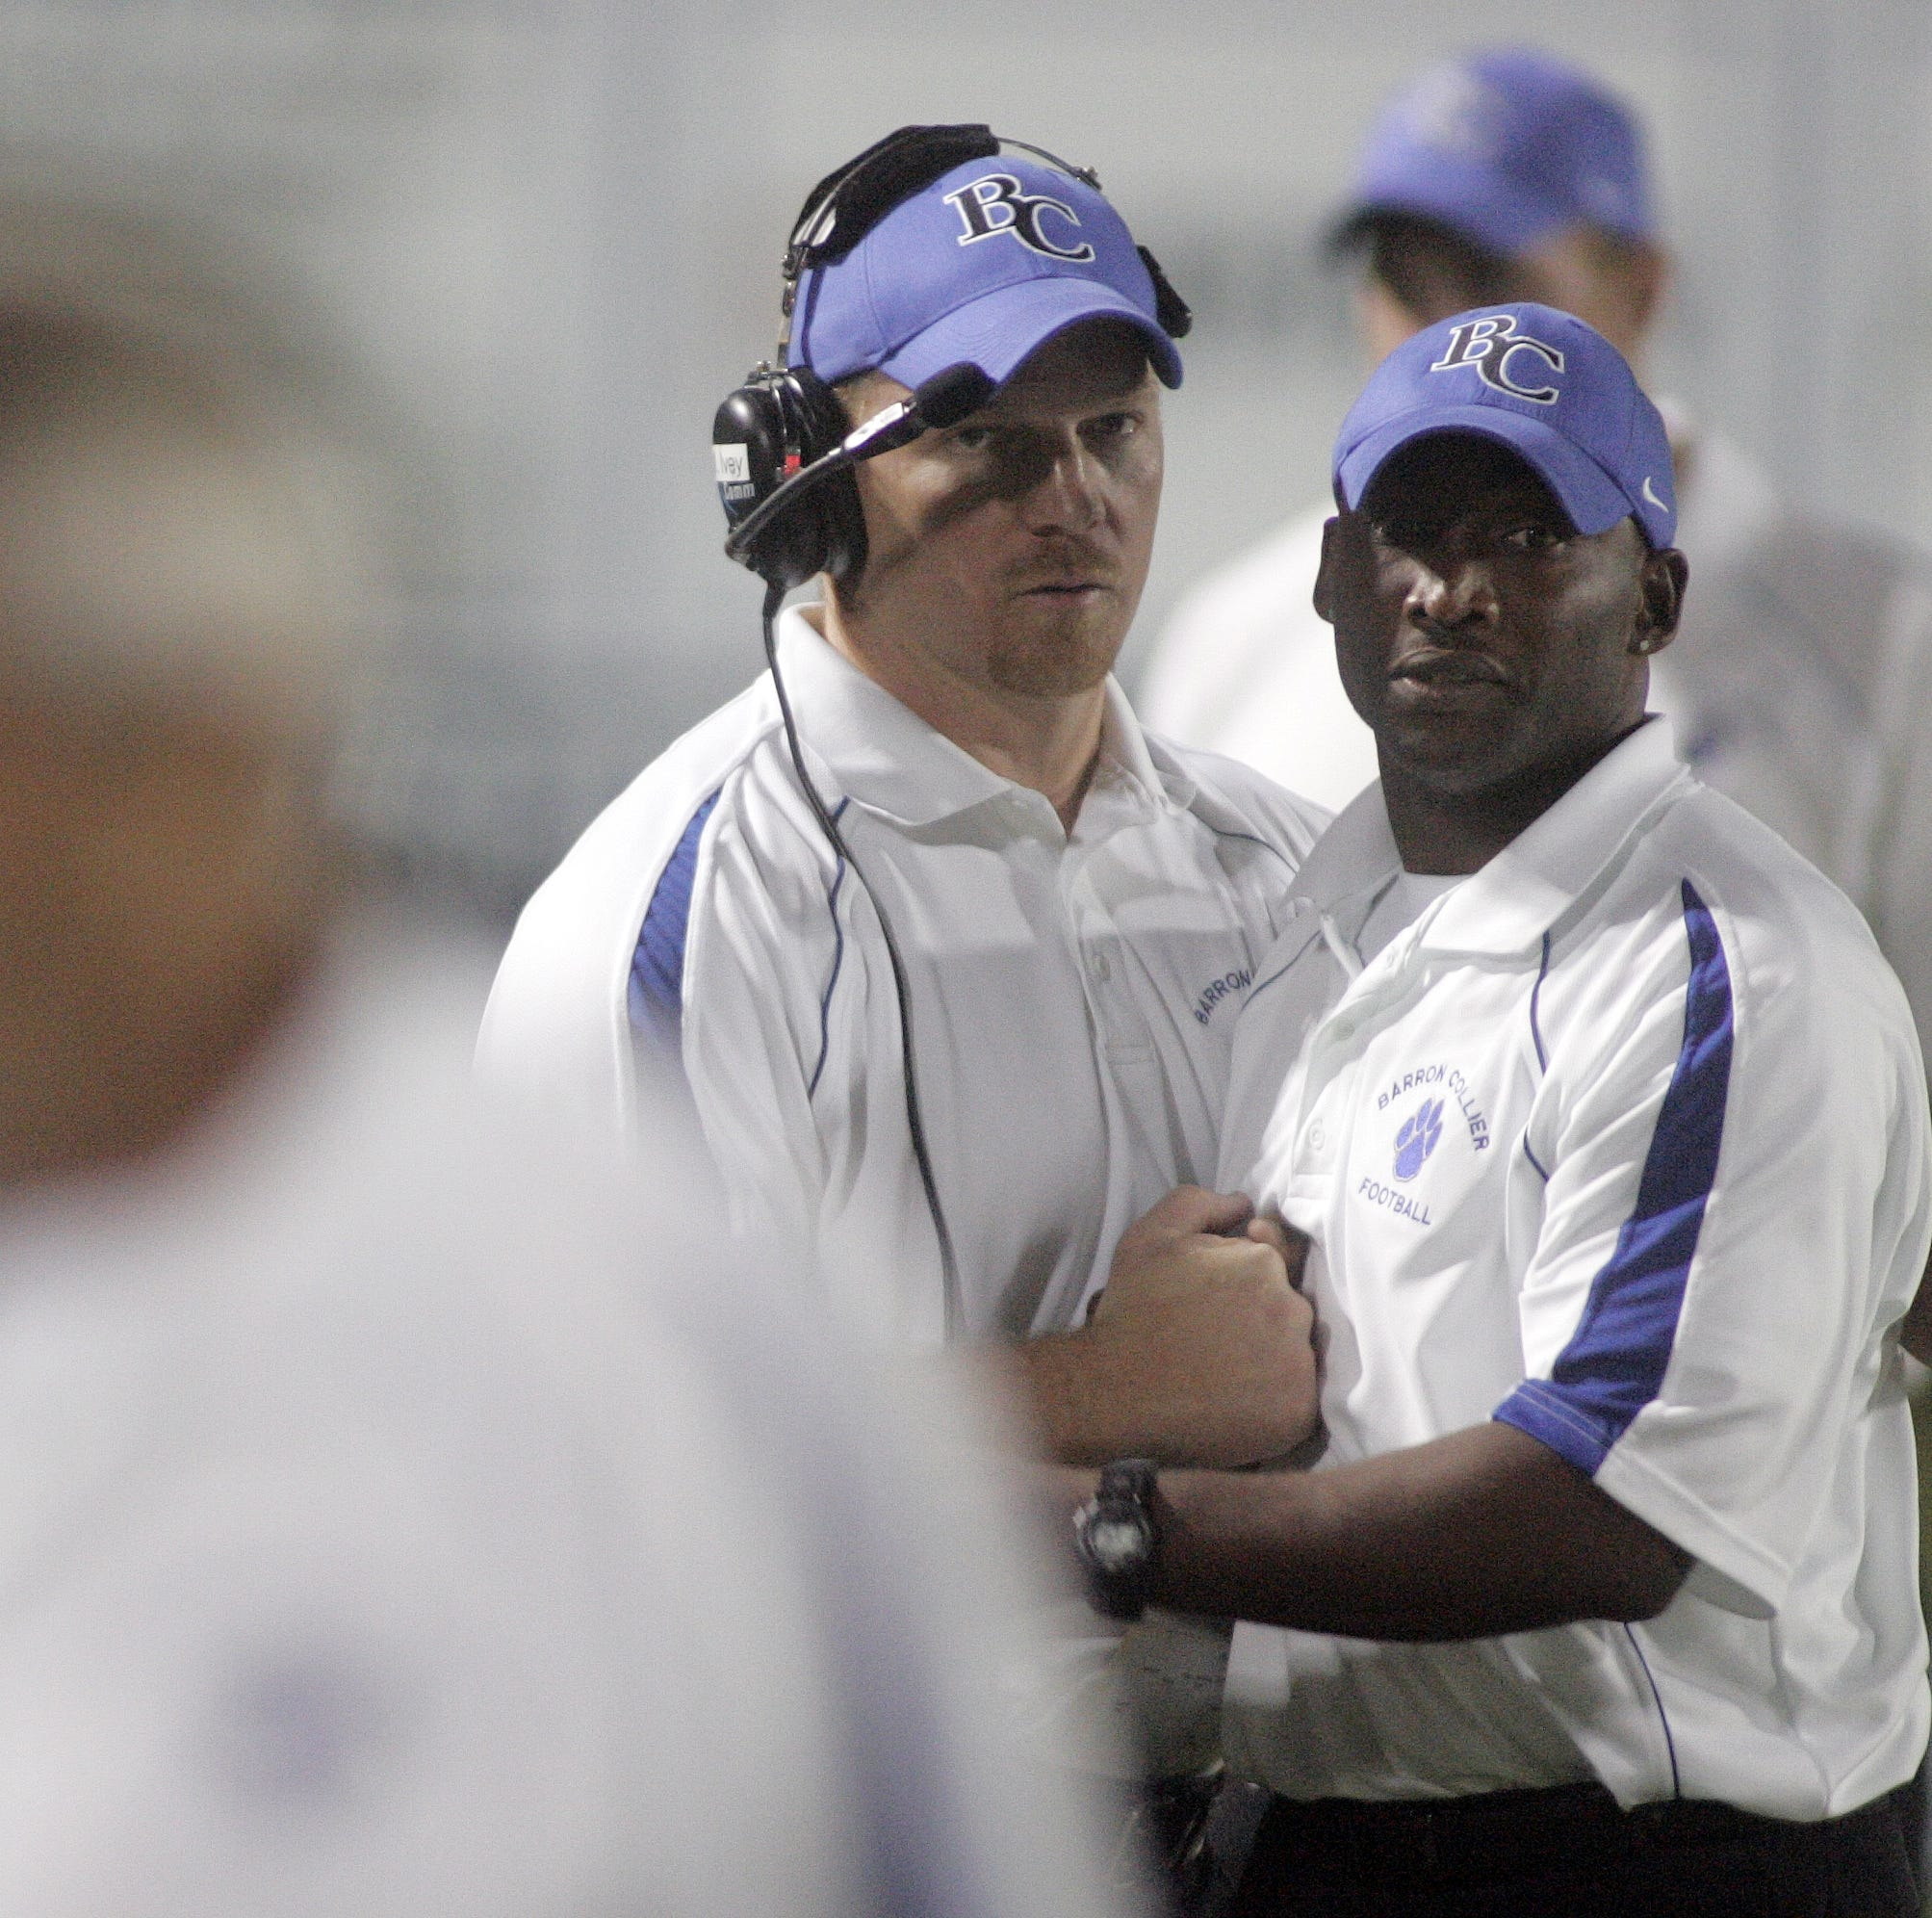 Former Cypress Lake, Barron Collier coach Mark Ivey named interim coach at Appalachian State